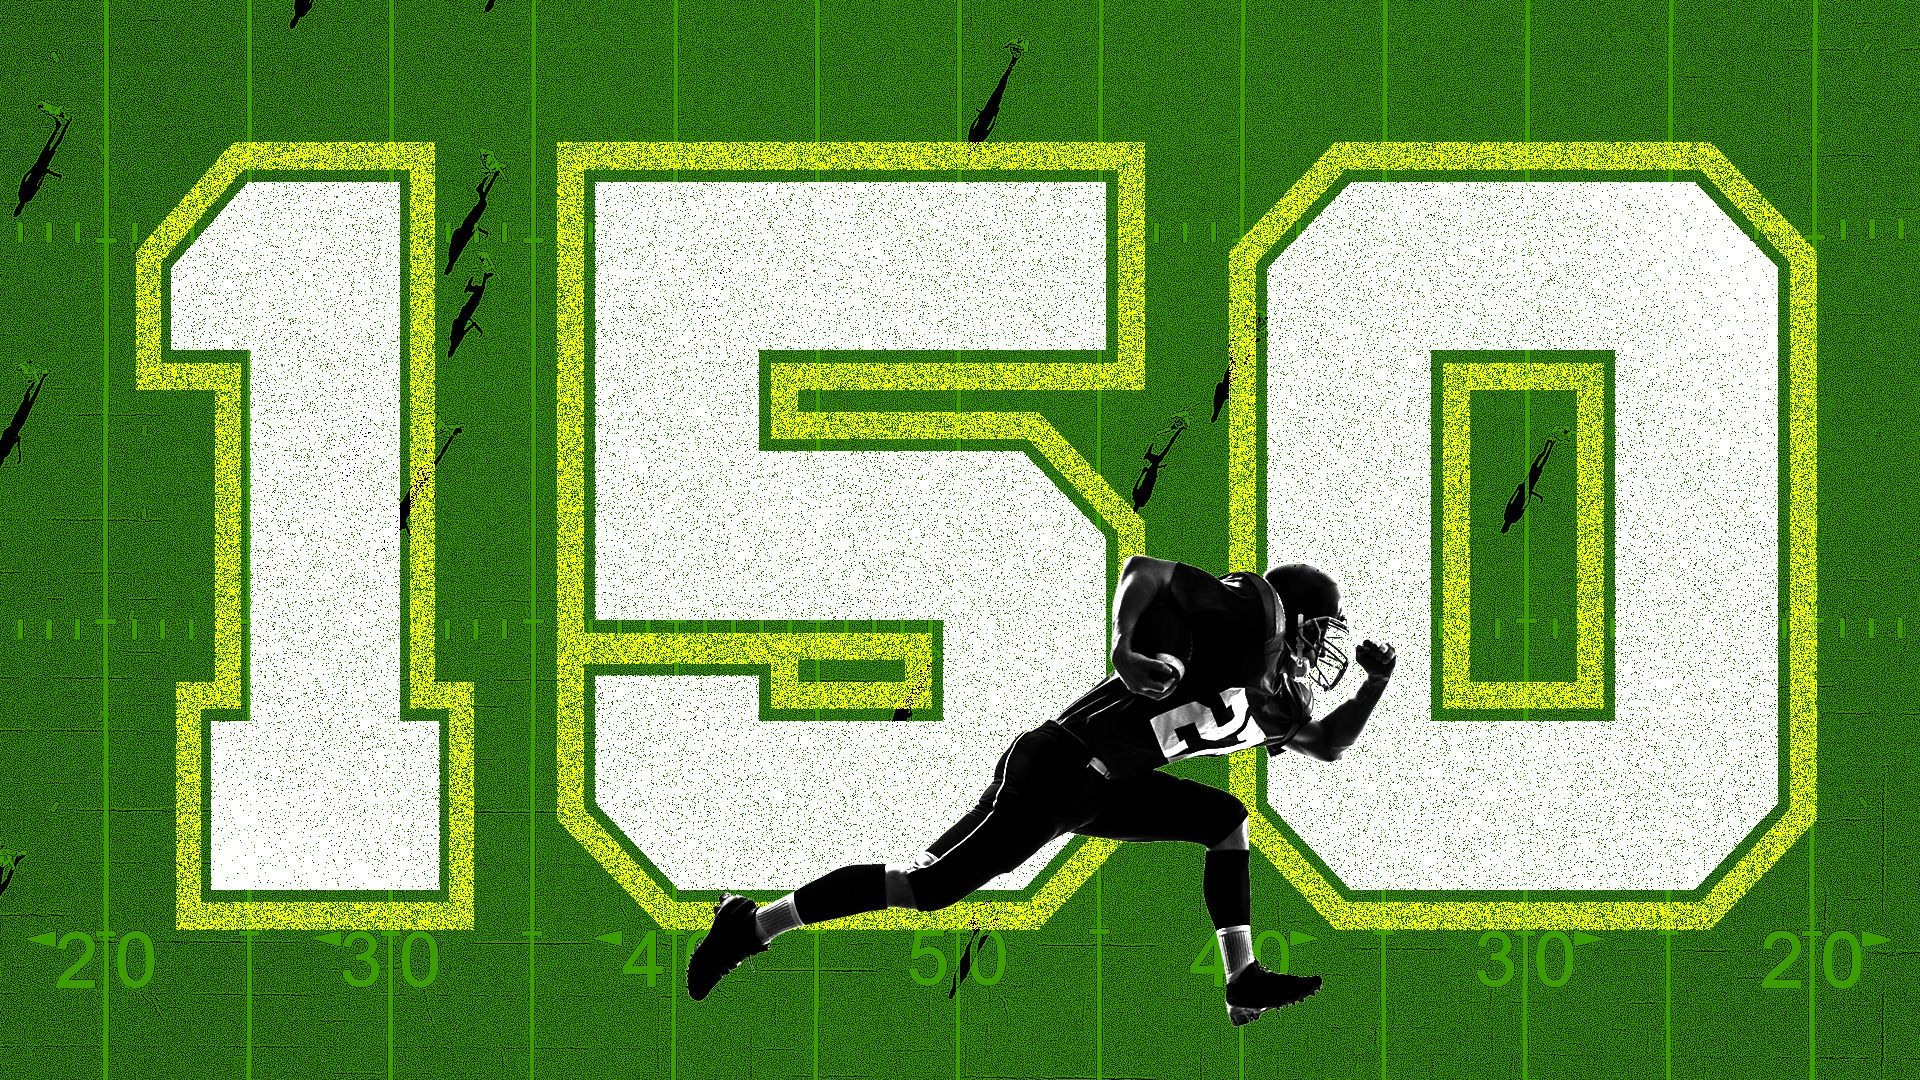 A football player running in front of large text reading '150'